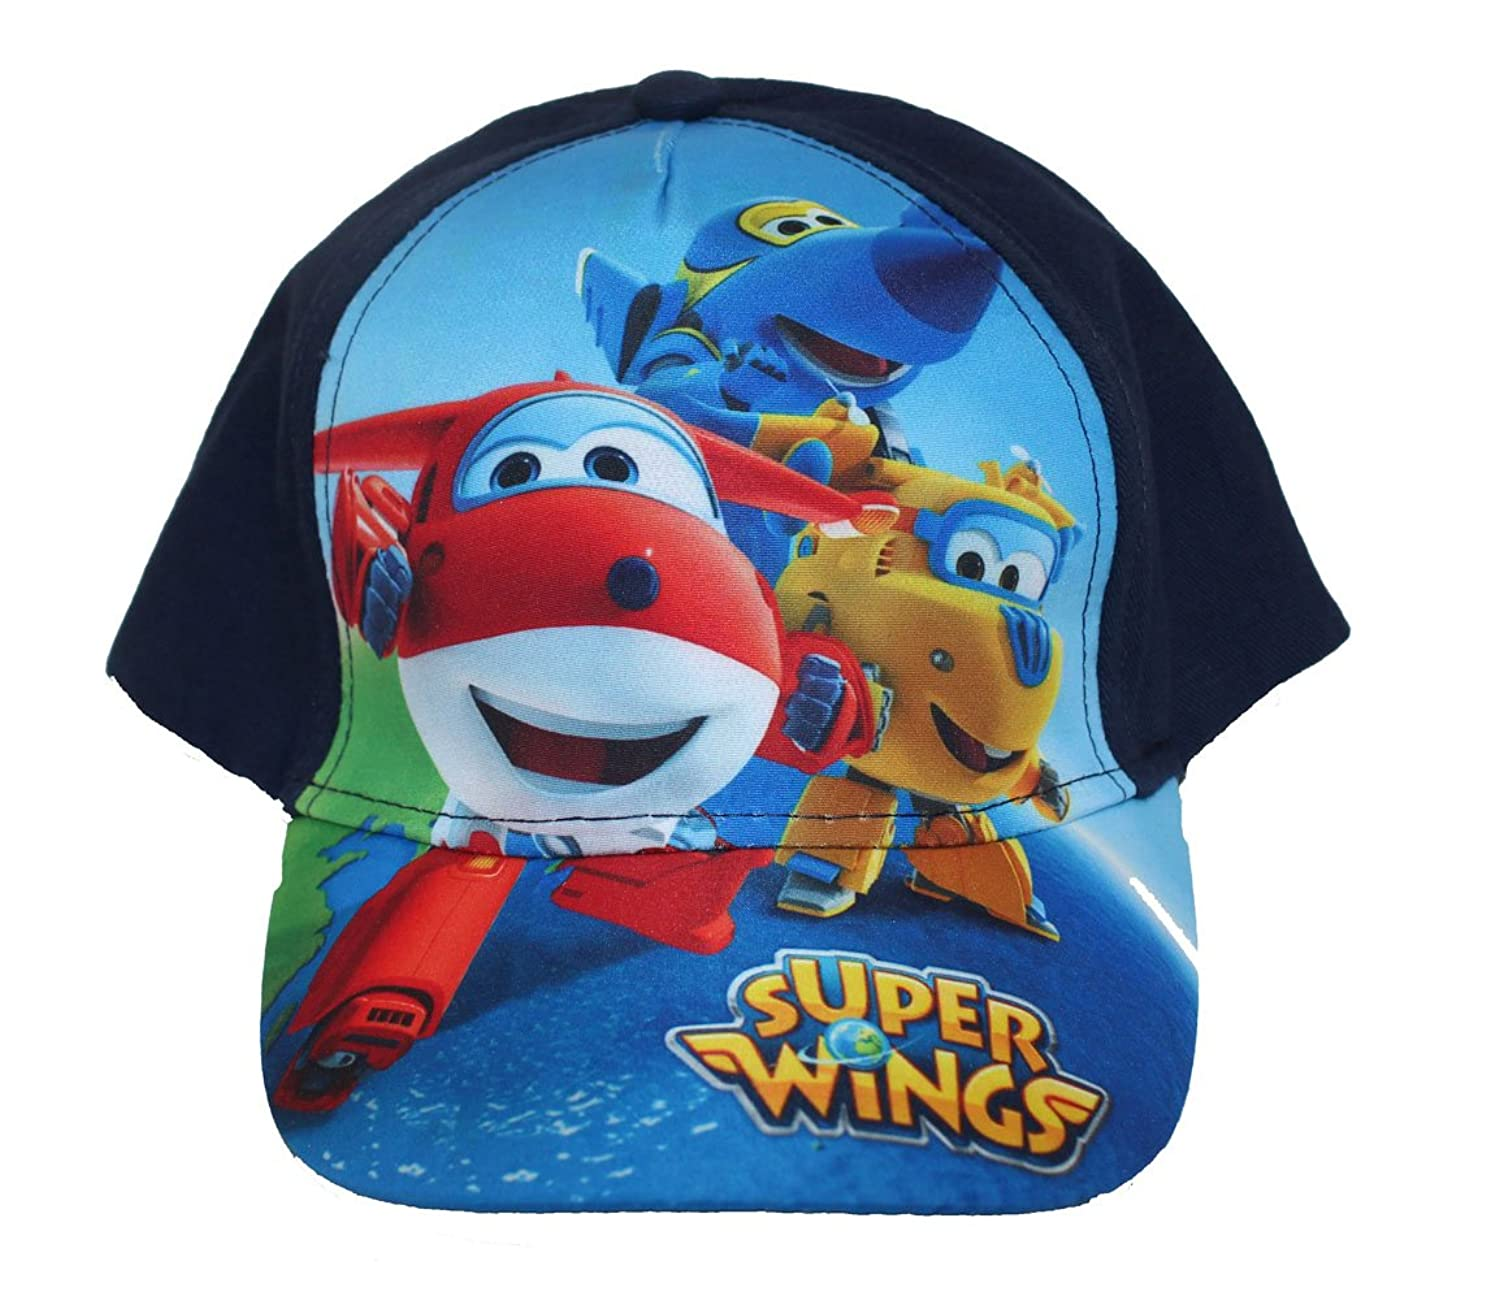 0b614d6fc8310 Super Wings Gorro - para niño 80% OFF - www.androidlife.es